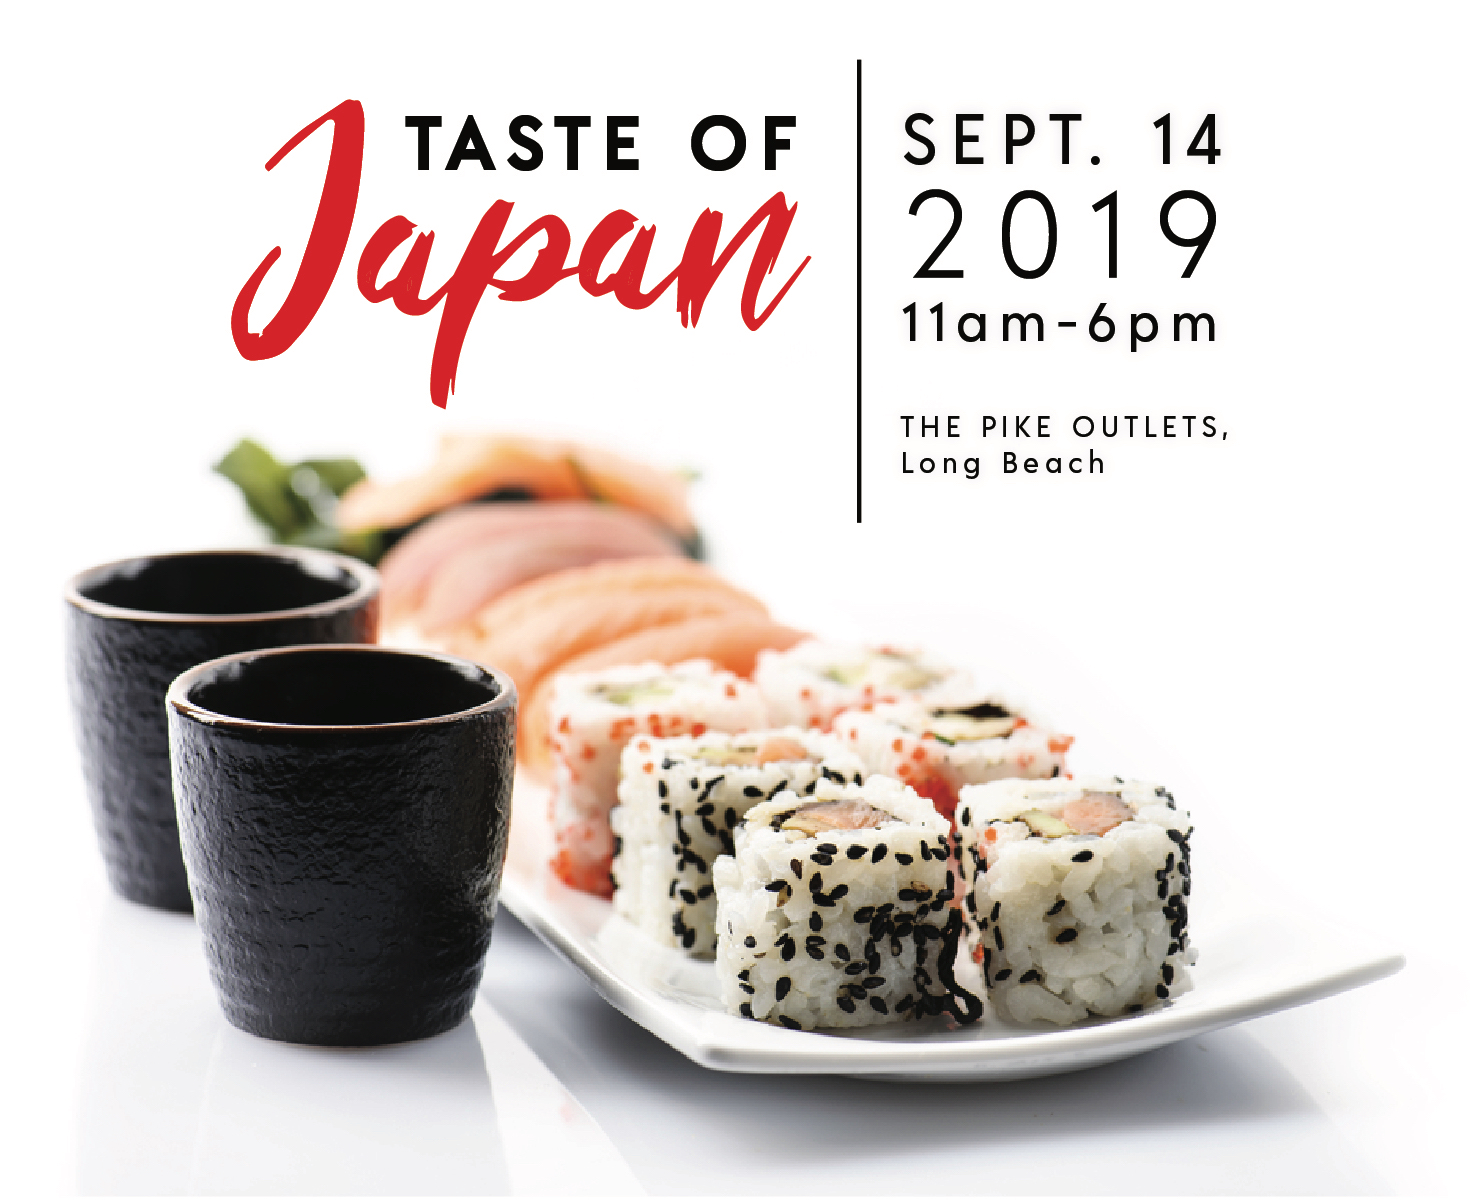 Taste of Japan in Long Beach - Celebrate Japanese culture and cuisine at the first everTaste of Japan, heading to the Pike Outlets in Downtown Long Beach September 14. This family-friendly festival will feature a wide variety of Japanese culinary treats available for purchase, as well as beautiful Japanese art, anime…